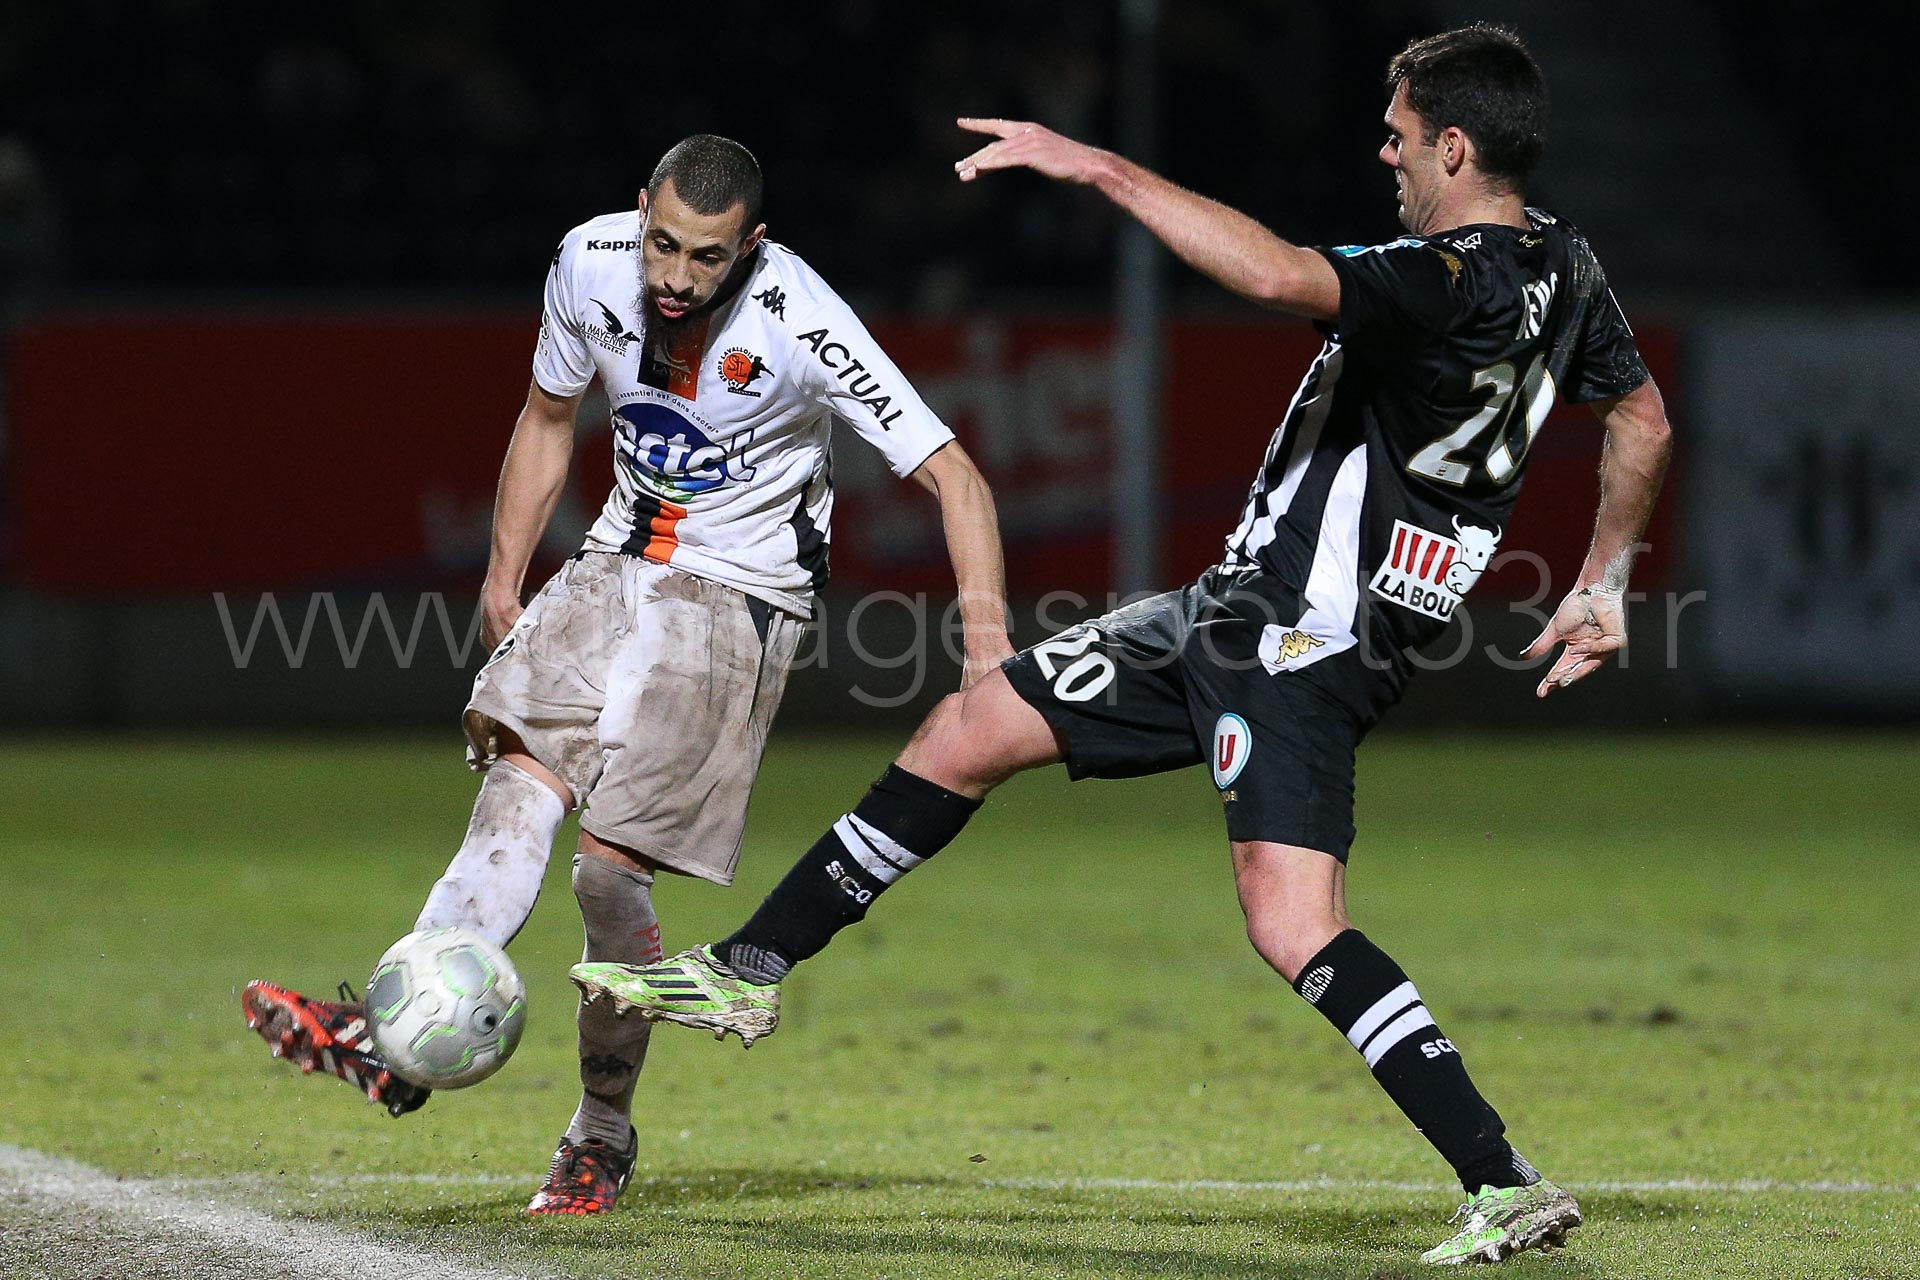 NG-Ligue2-1415-J25-Angers-Laval_22